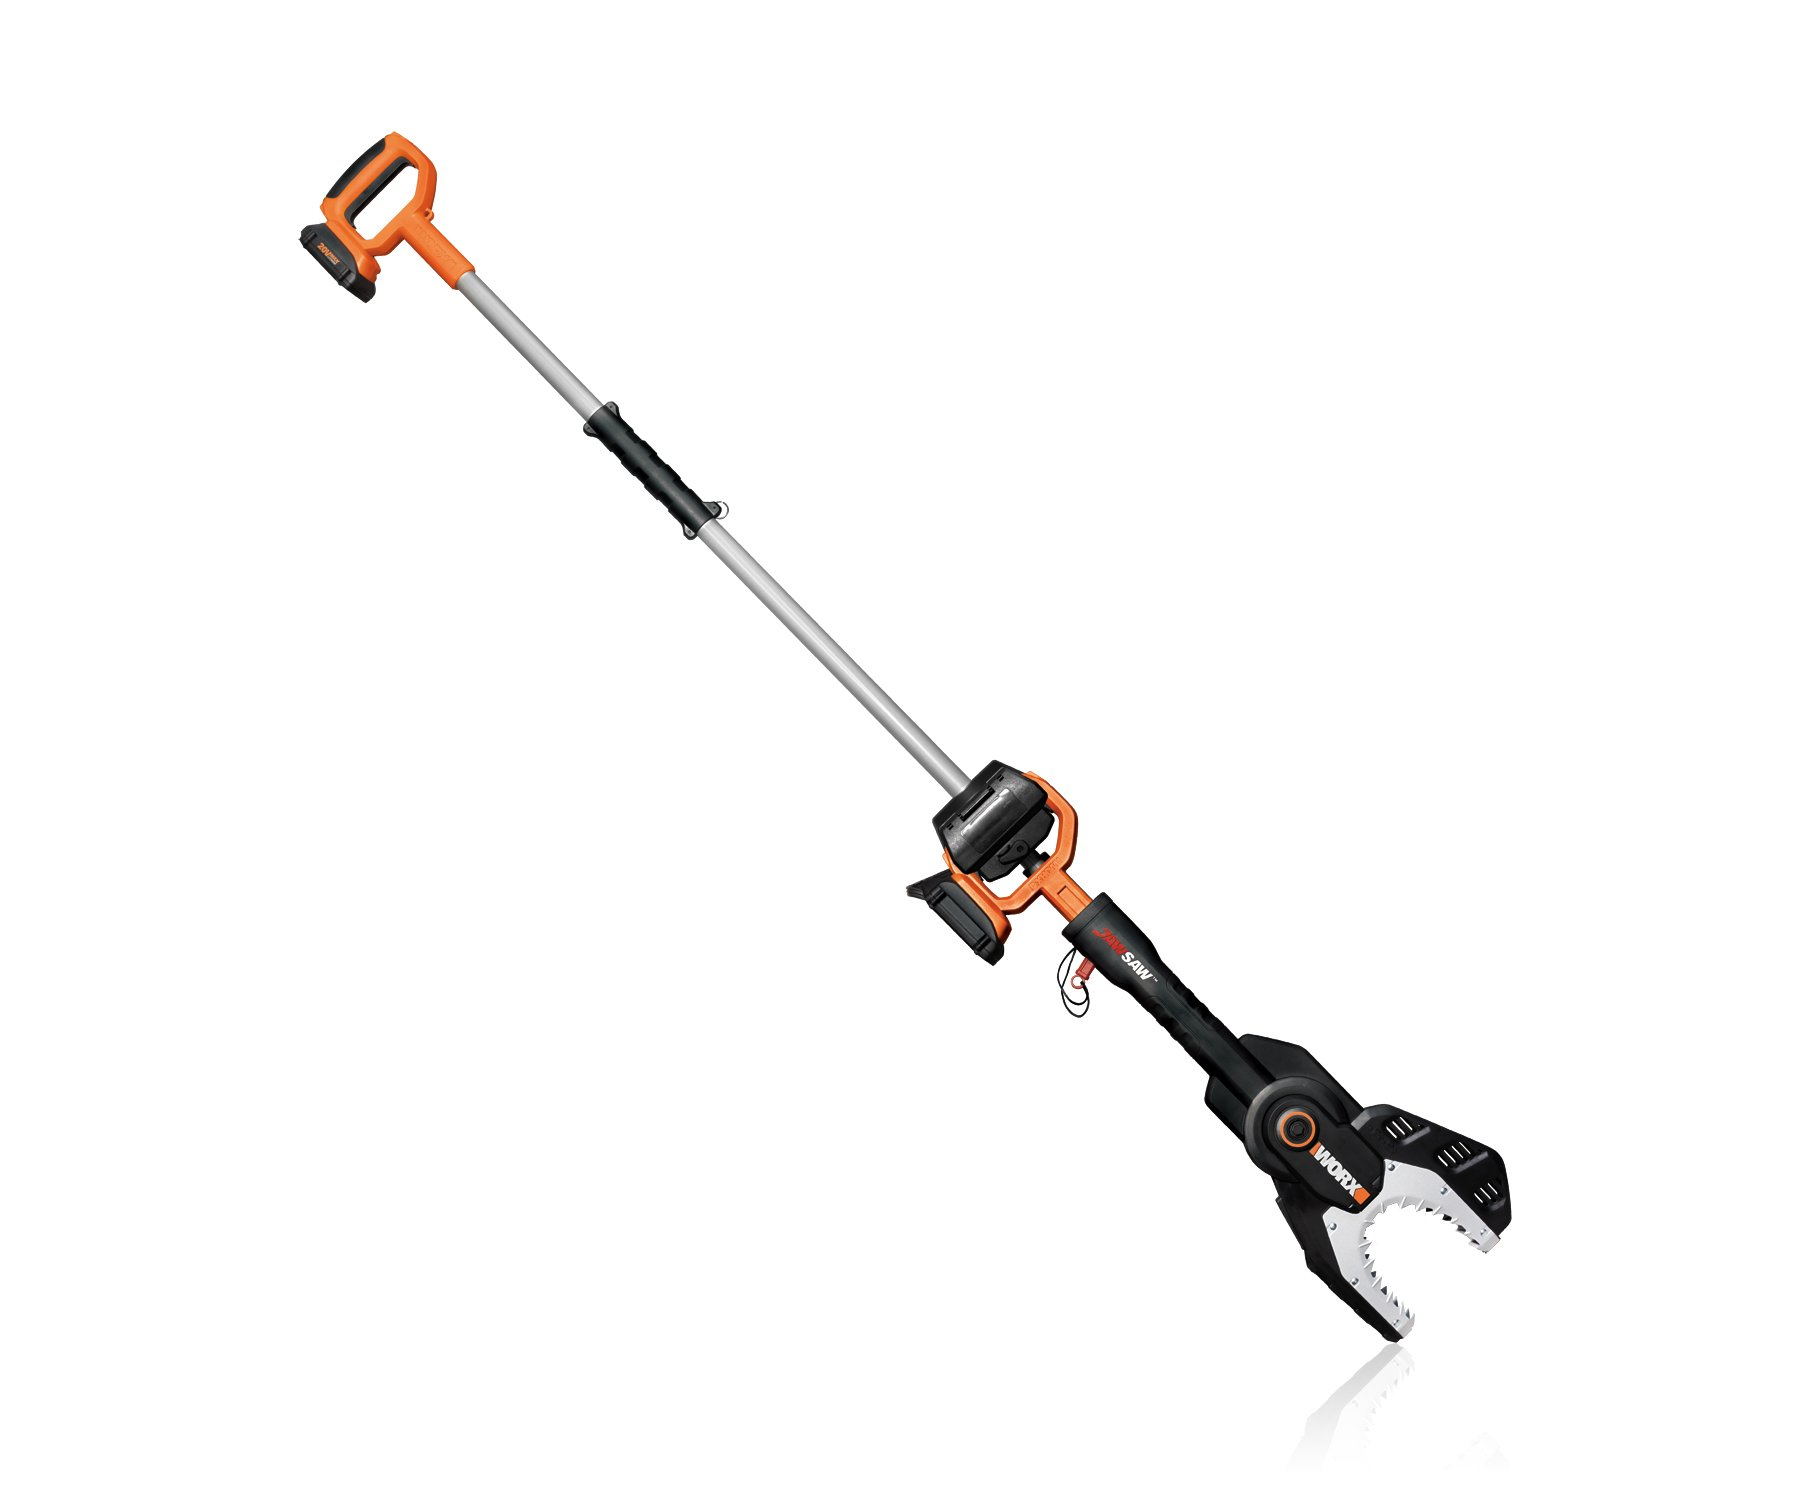 WORX WG321 20-volt Max Lithium Cordless Chainsaw with Extension Pole, Battery and Charger Included